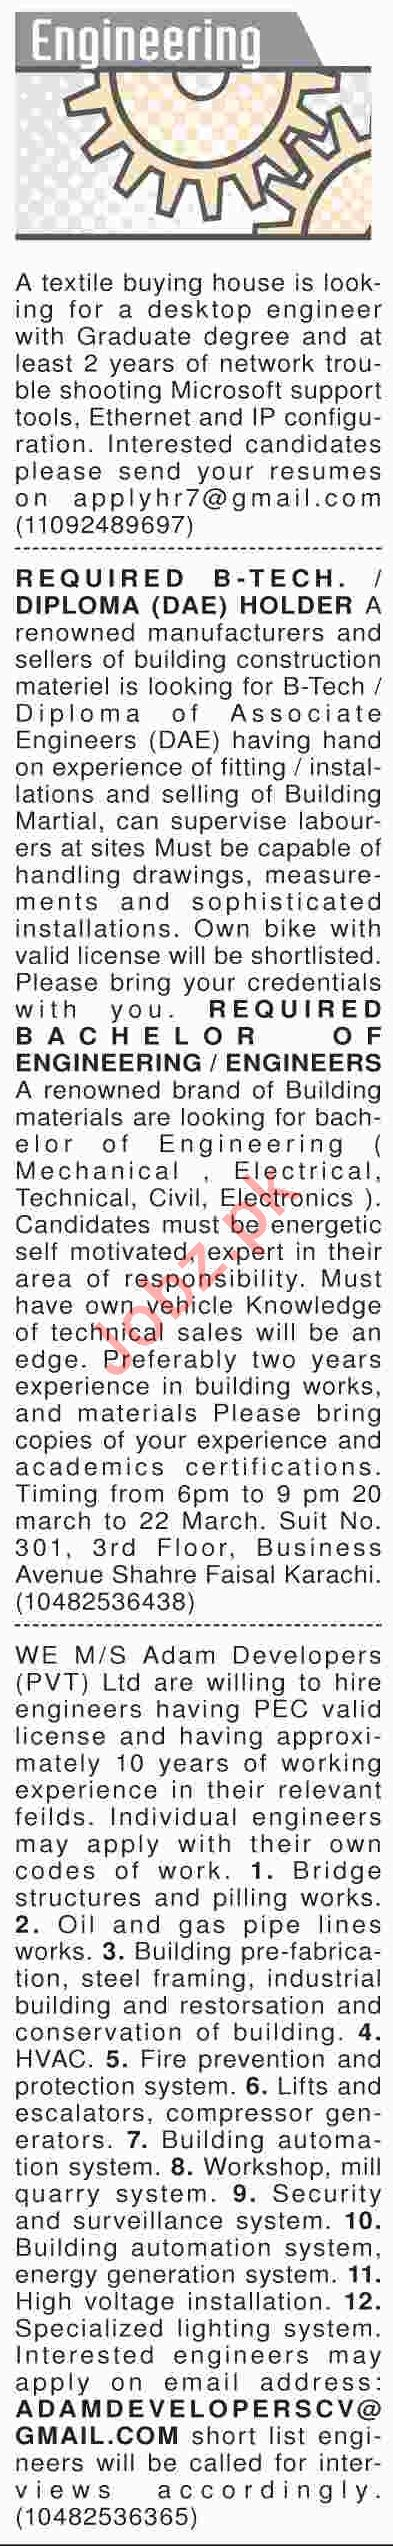 Dawn Sunday Classified Ads 17th March 2019 for Engineers